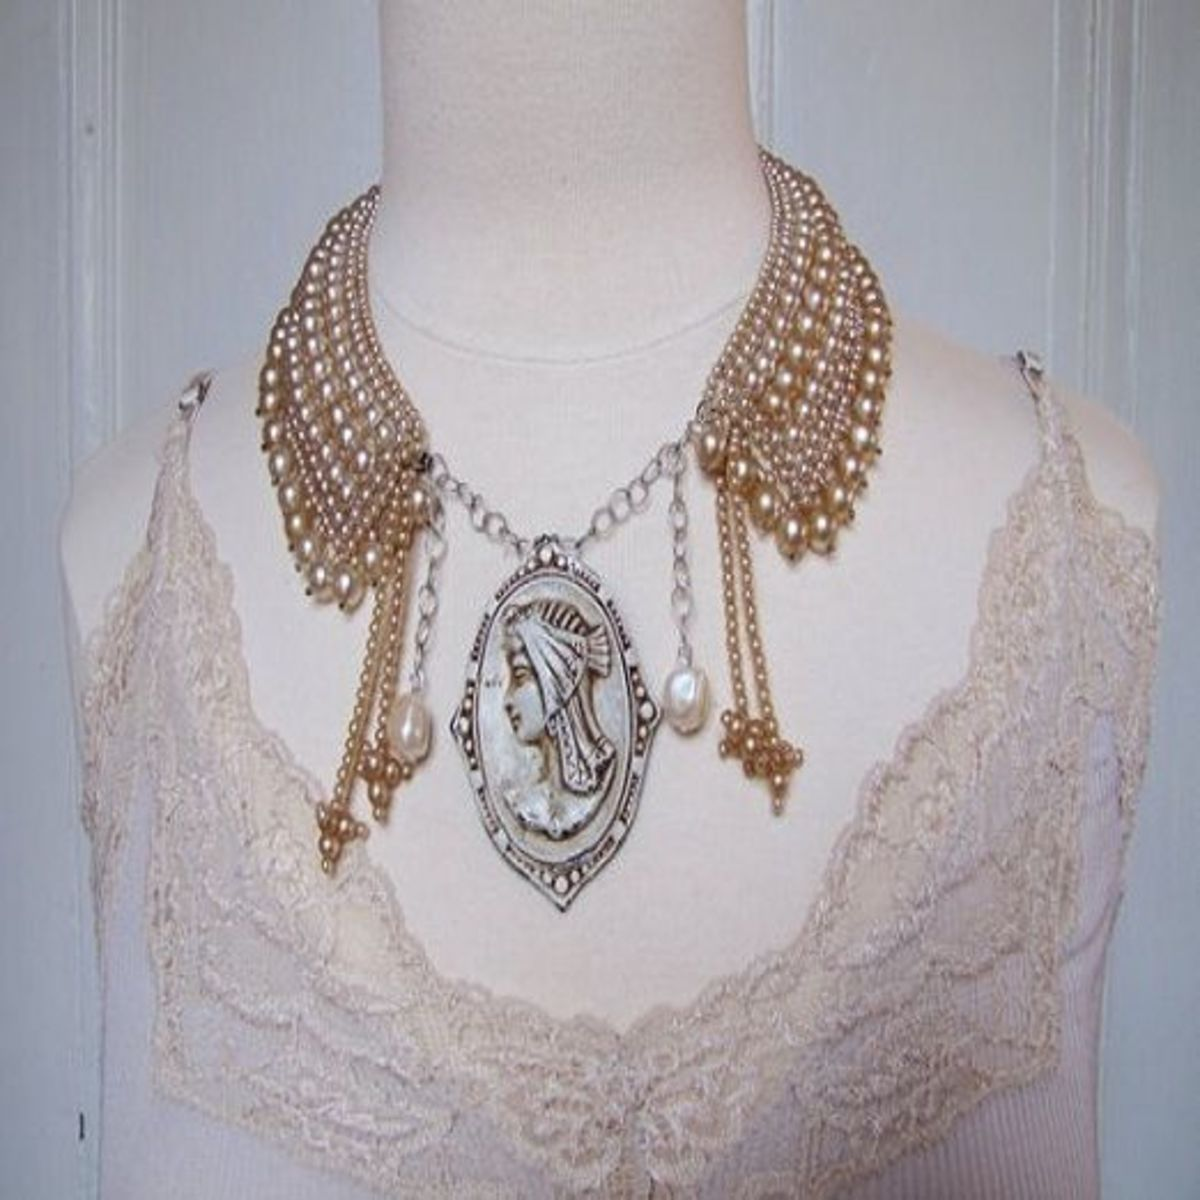 Vintage jewelry repurposed into a necklace by Rose and Thatch